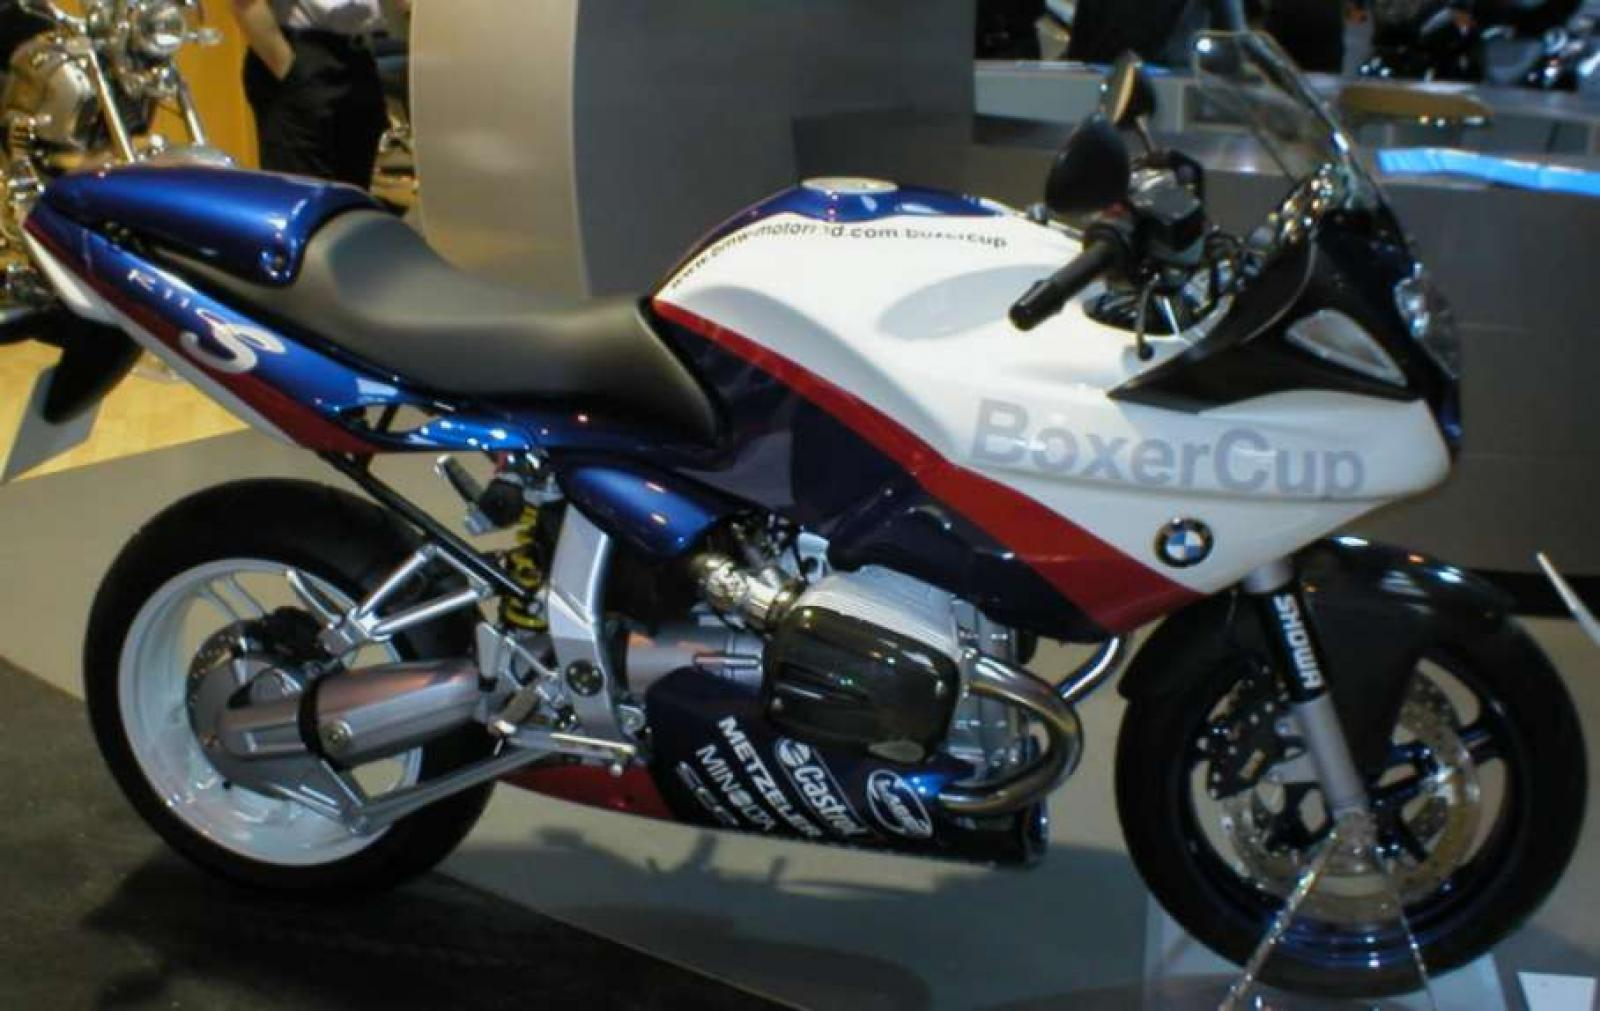 BMW R1100S BoxerCup Replika images #12993